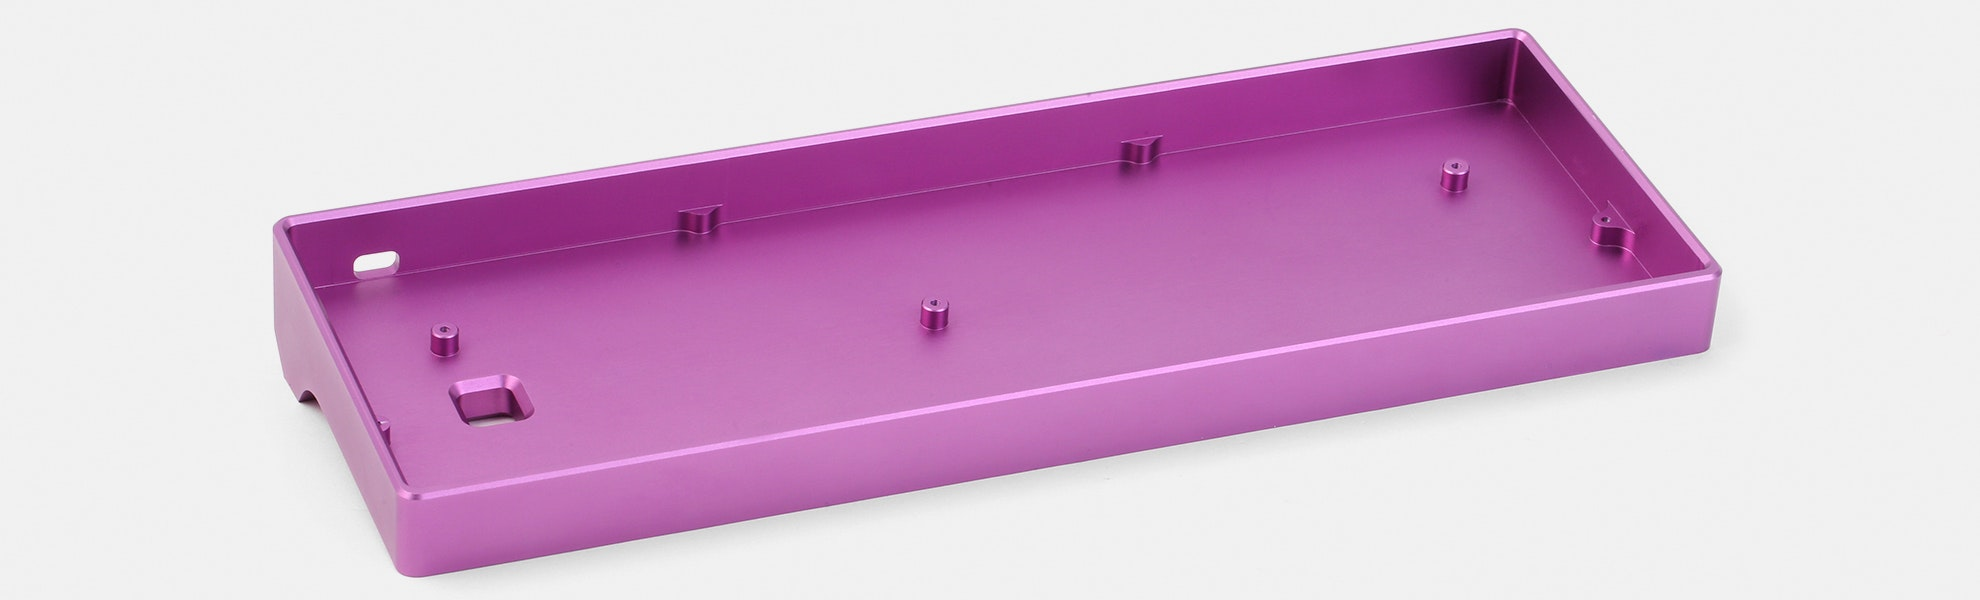 Anodized Aluminum 60% Keyboard Case – Flash Sale